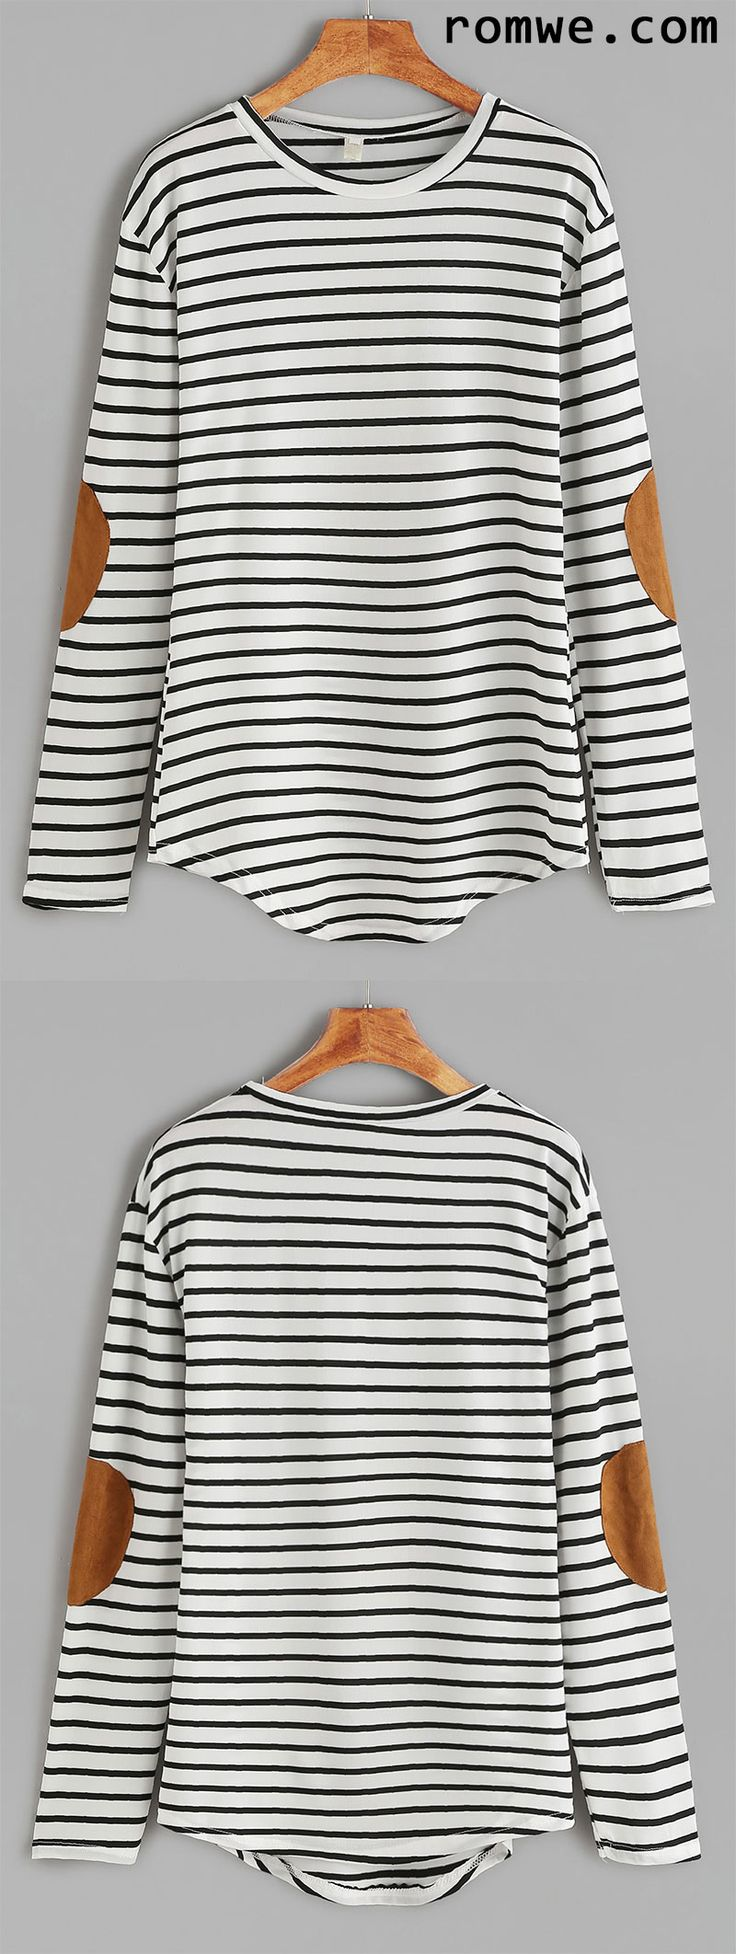 best duds images on pinterest my style casual wear and